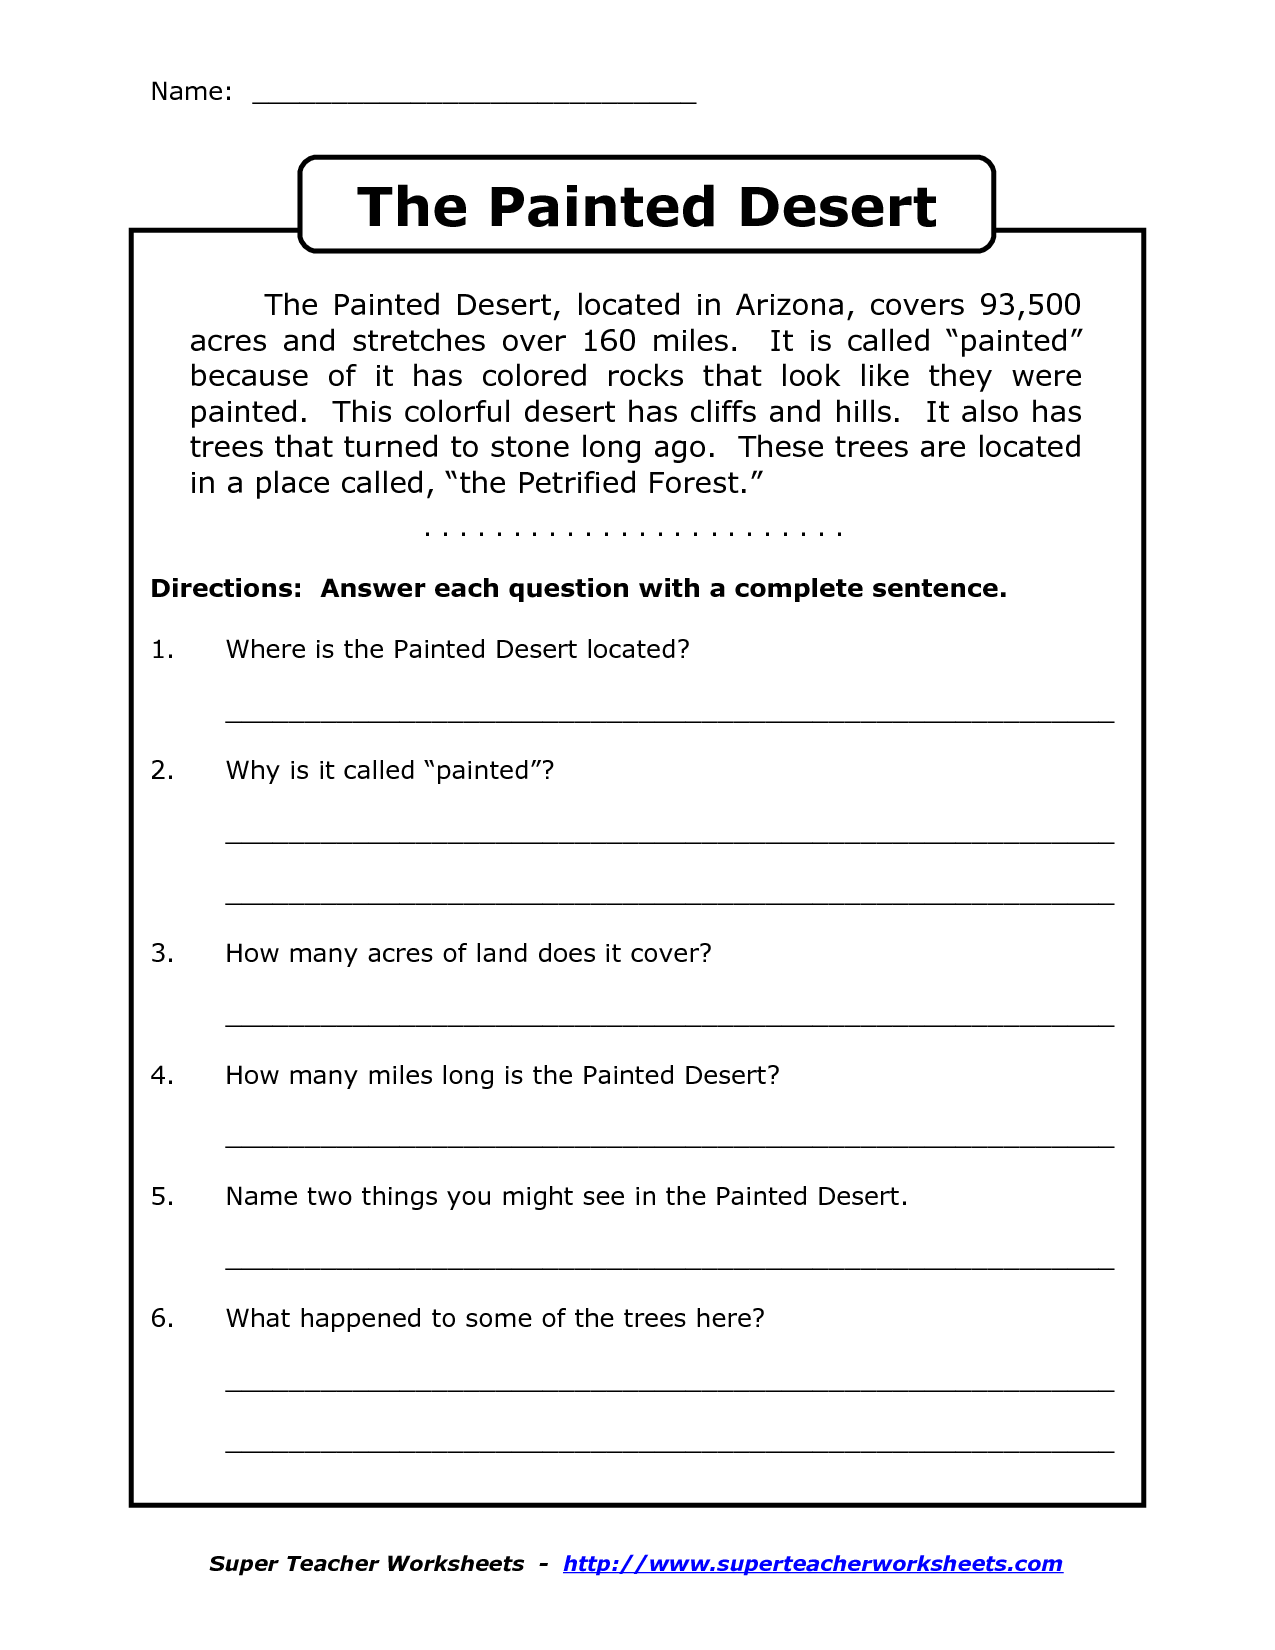 Worksheets Free Reading Worksheets For 4th Grade reading worksheets for 4th grade comprehension 3 name the painted desert